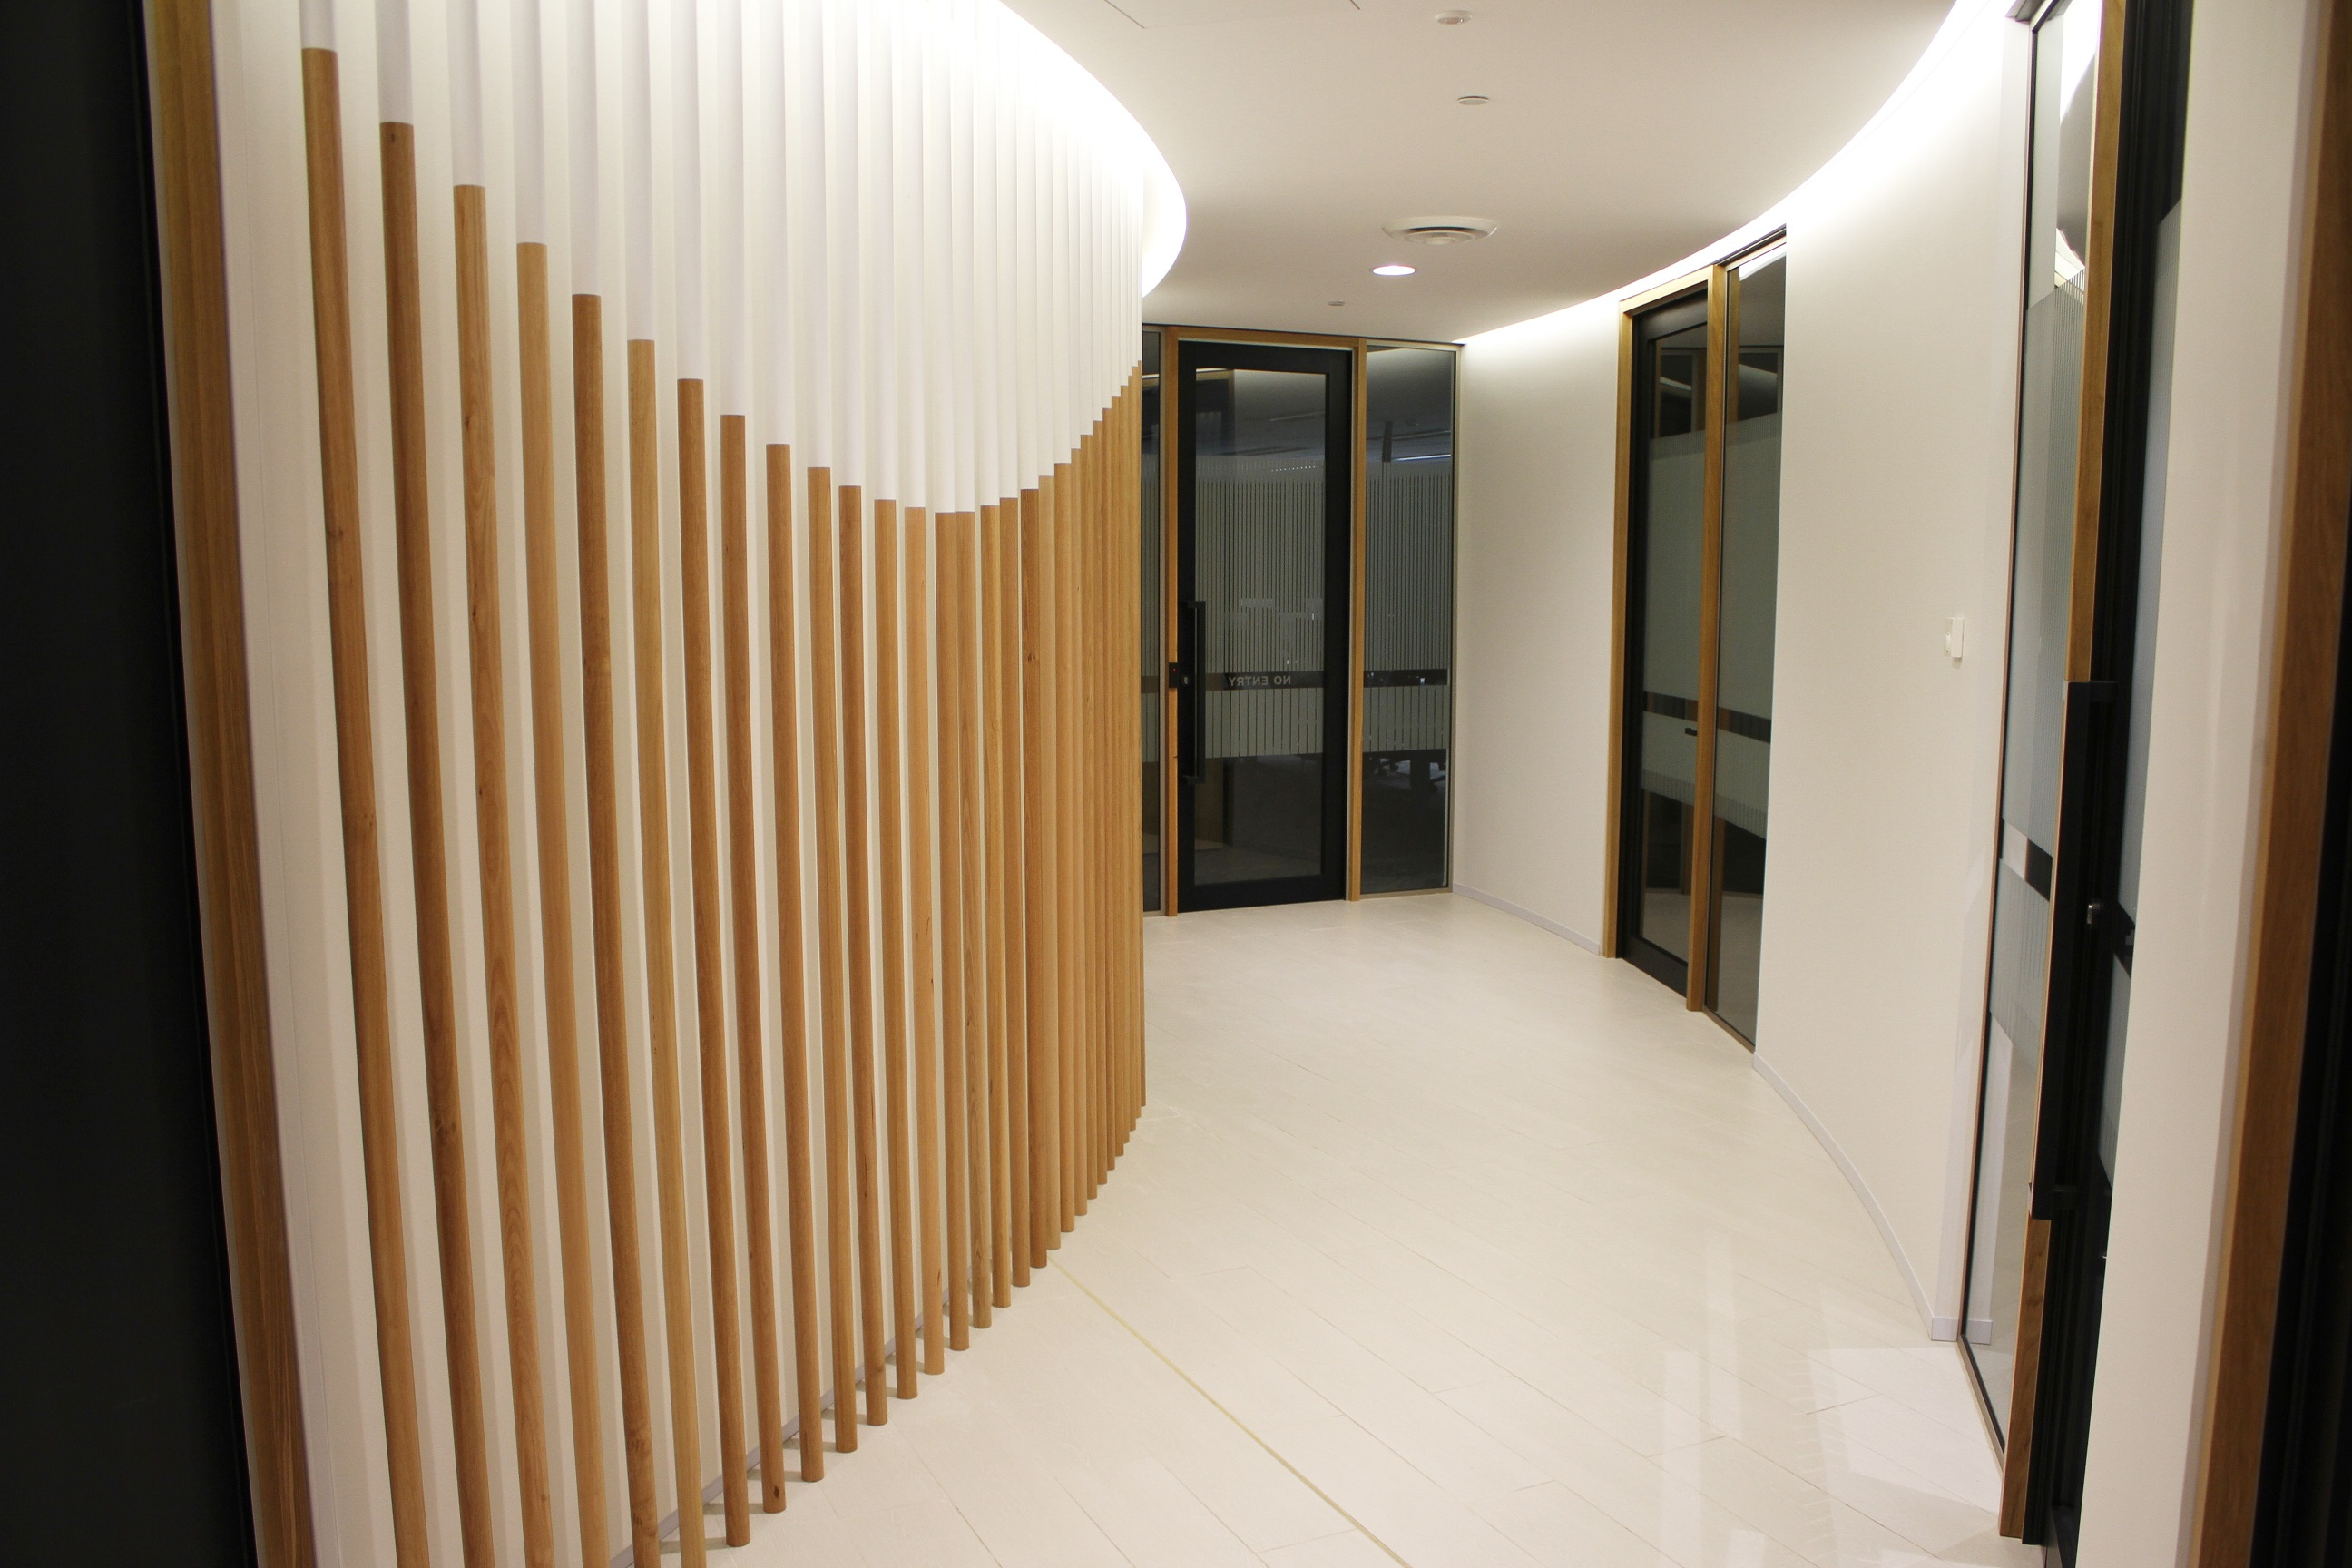 Curved Corridor fitted with Acoustic Panels